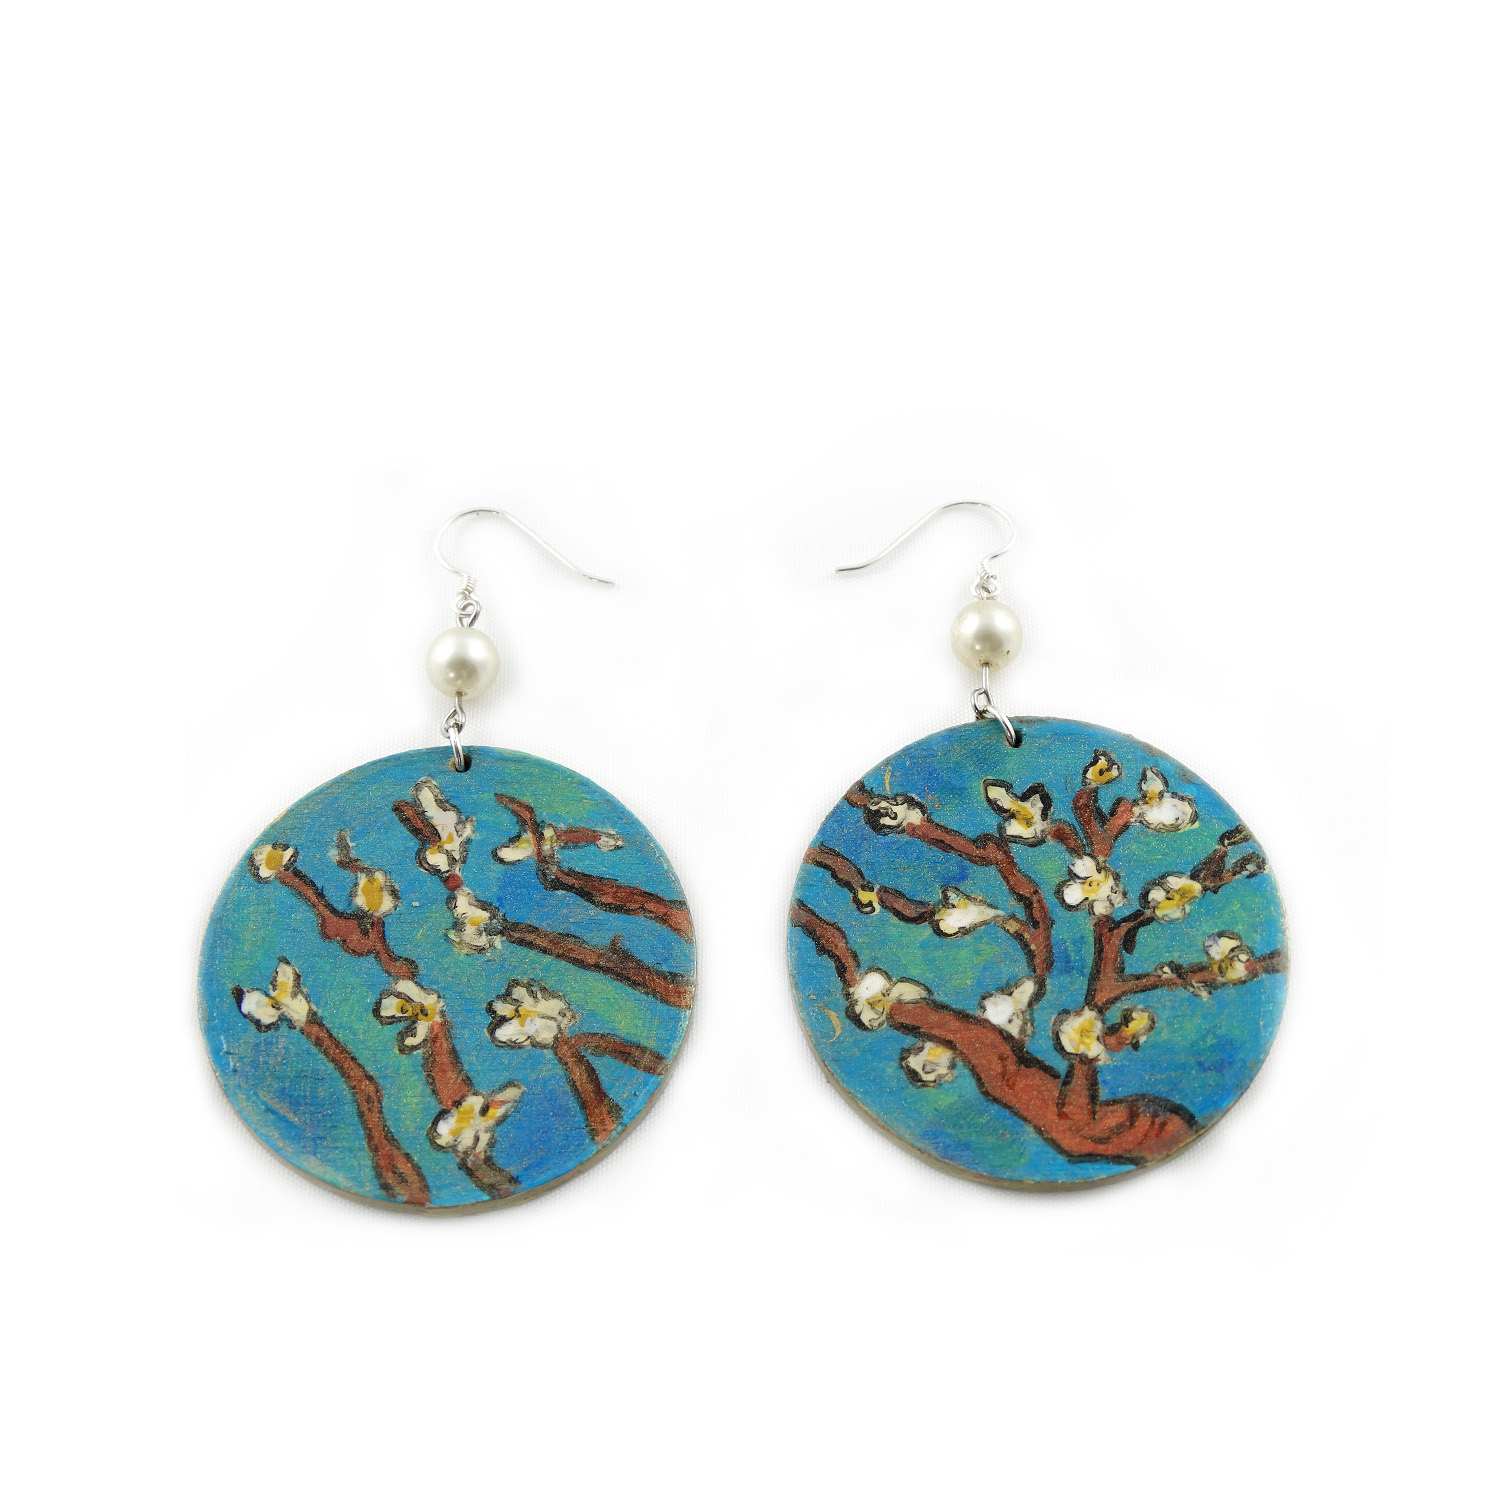 Hand-painted earrings - The almond by Van Gogh